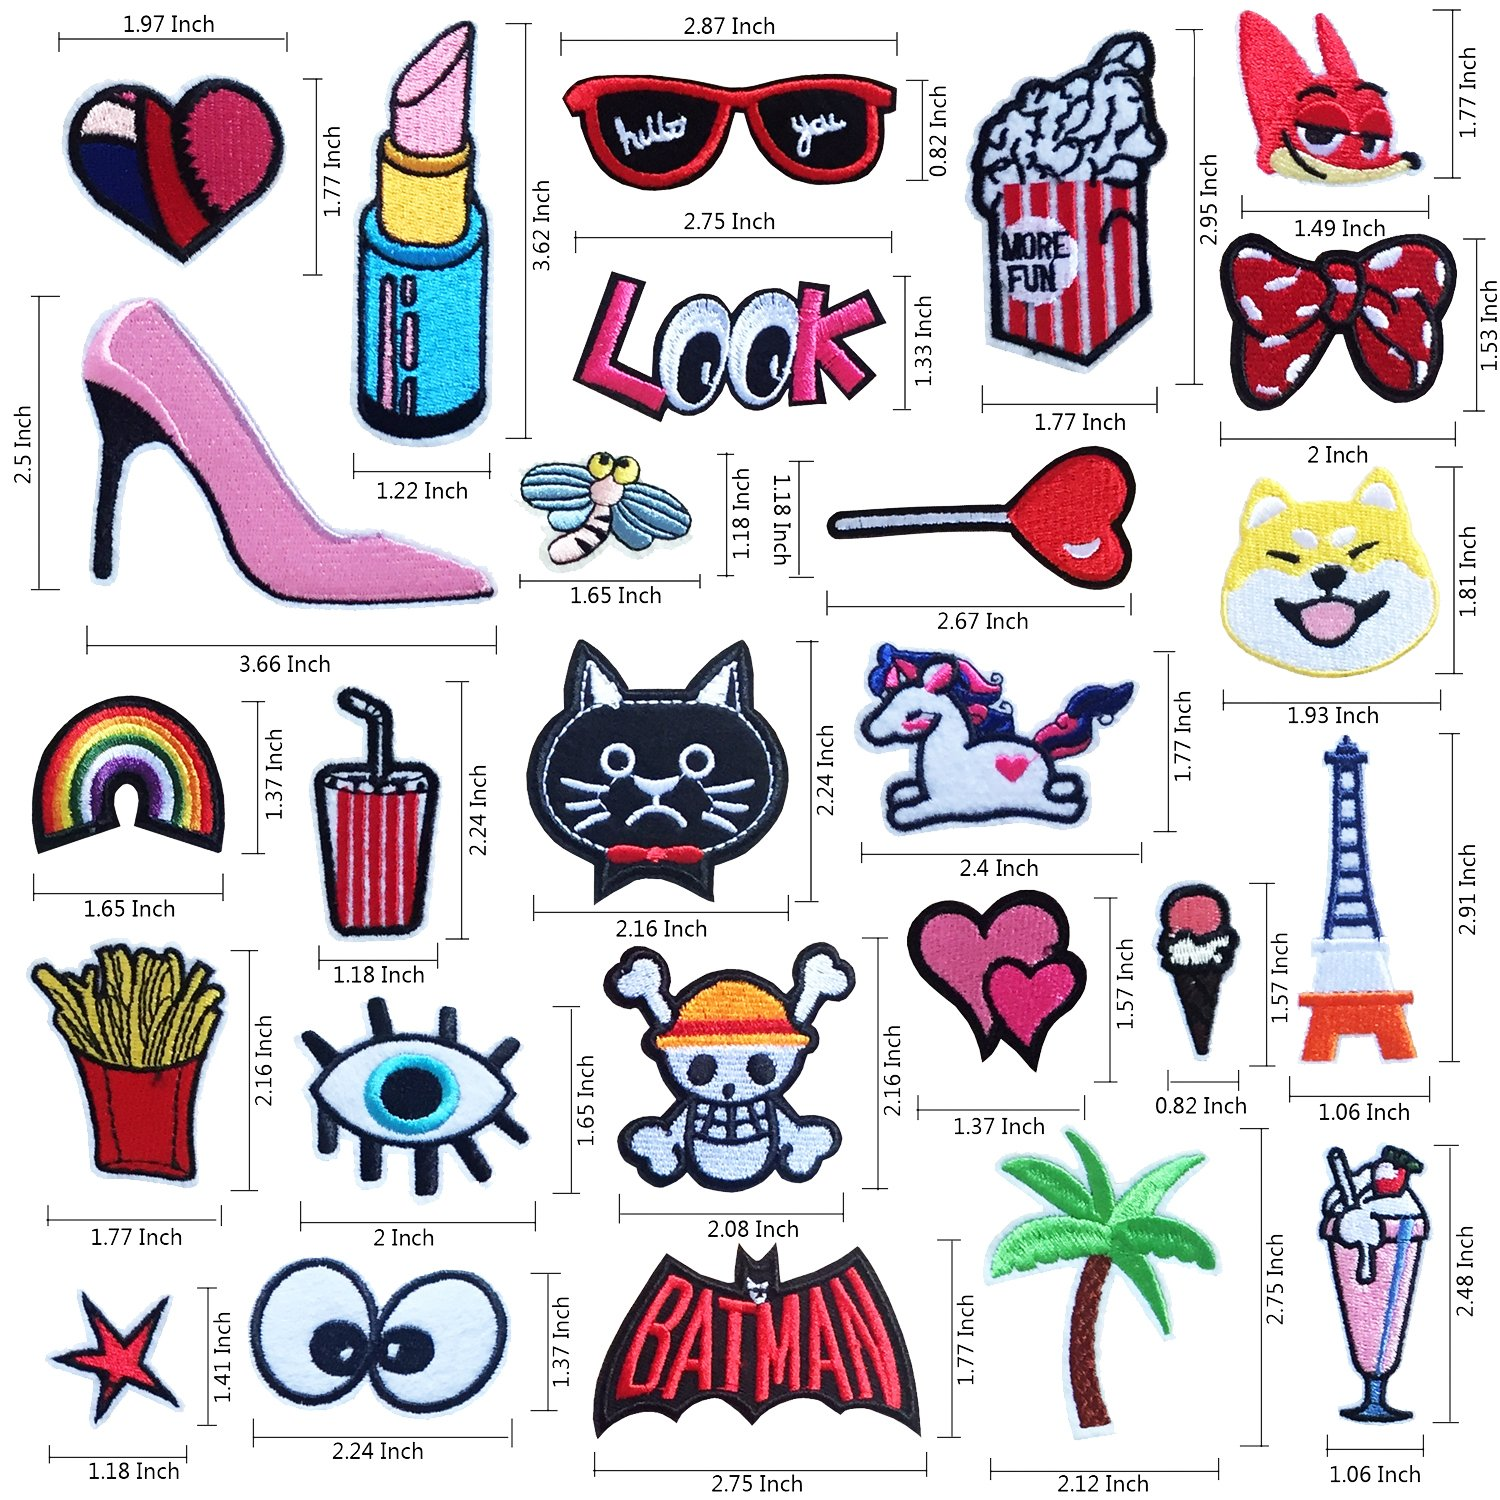 C Style 20pcs Iron On Patches Embroidered Appliques DIY Decoration or Repair,Sew On Patches for Clothing Backpacks Jeans Caps Shoes etc